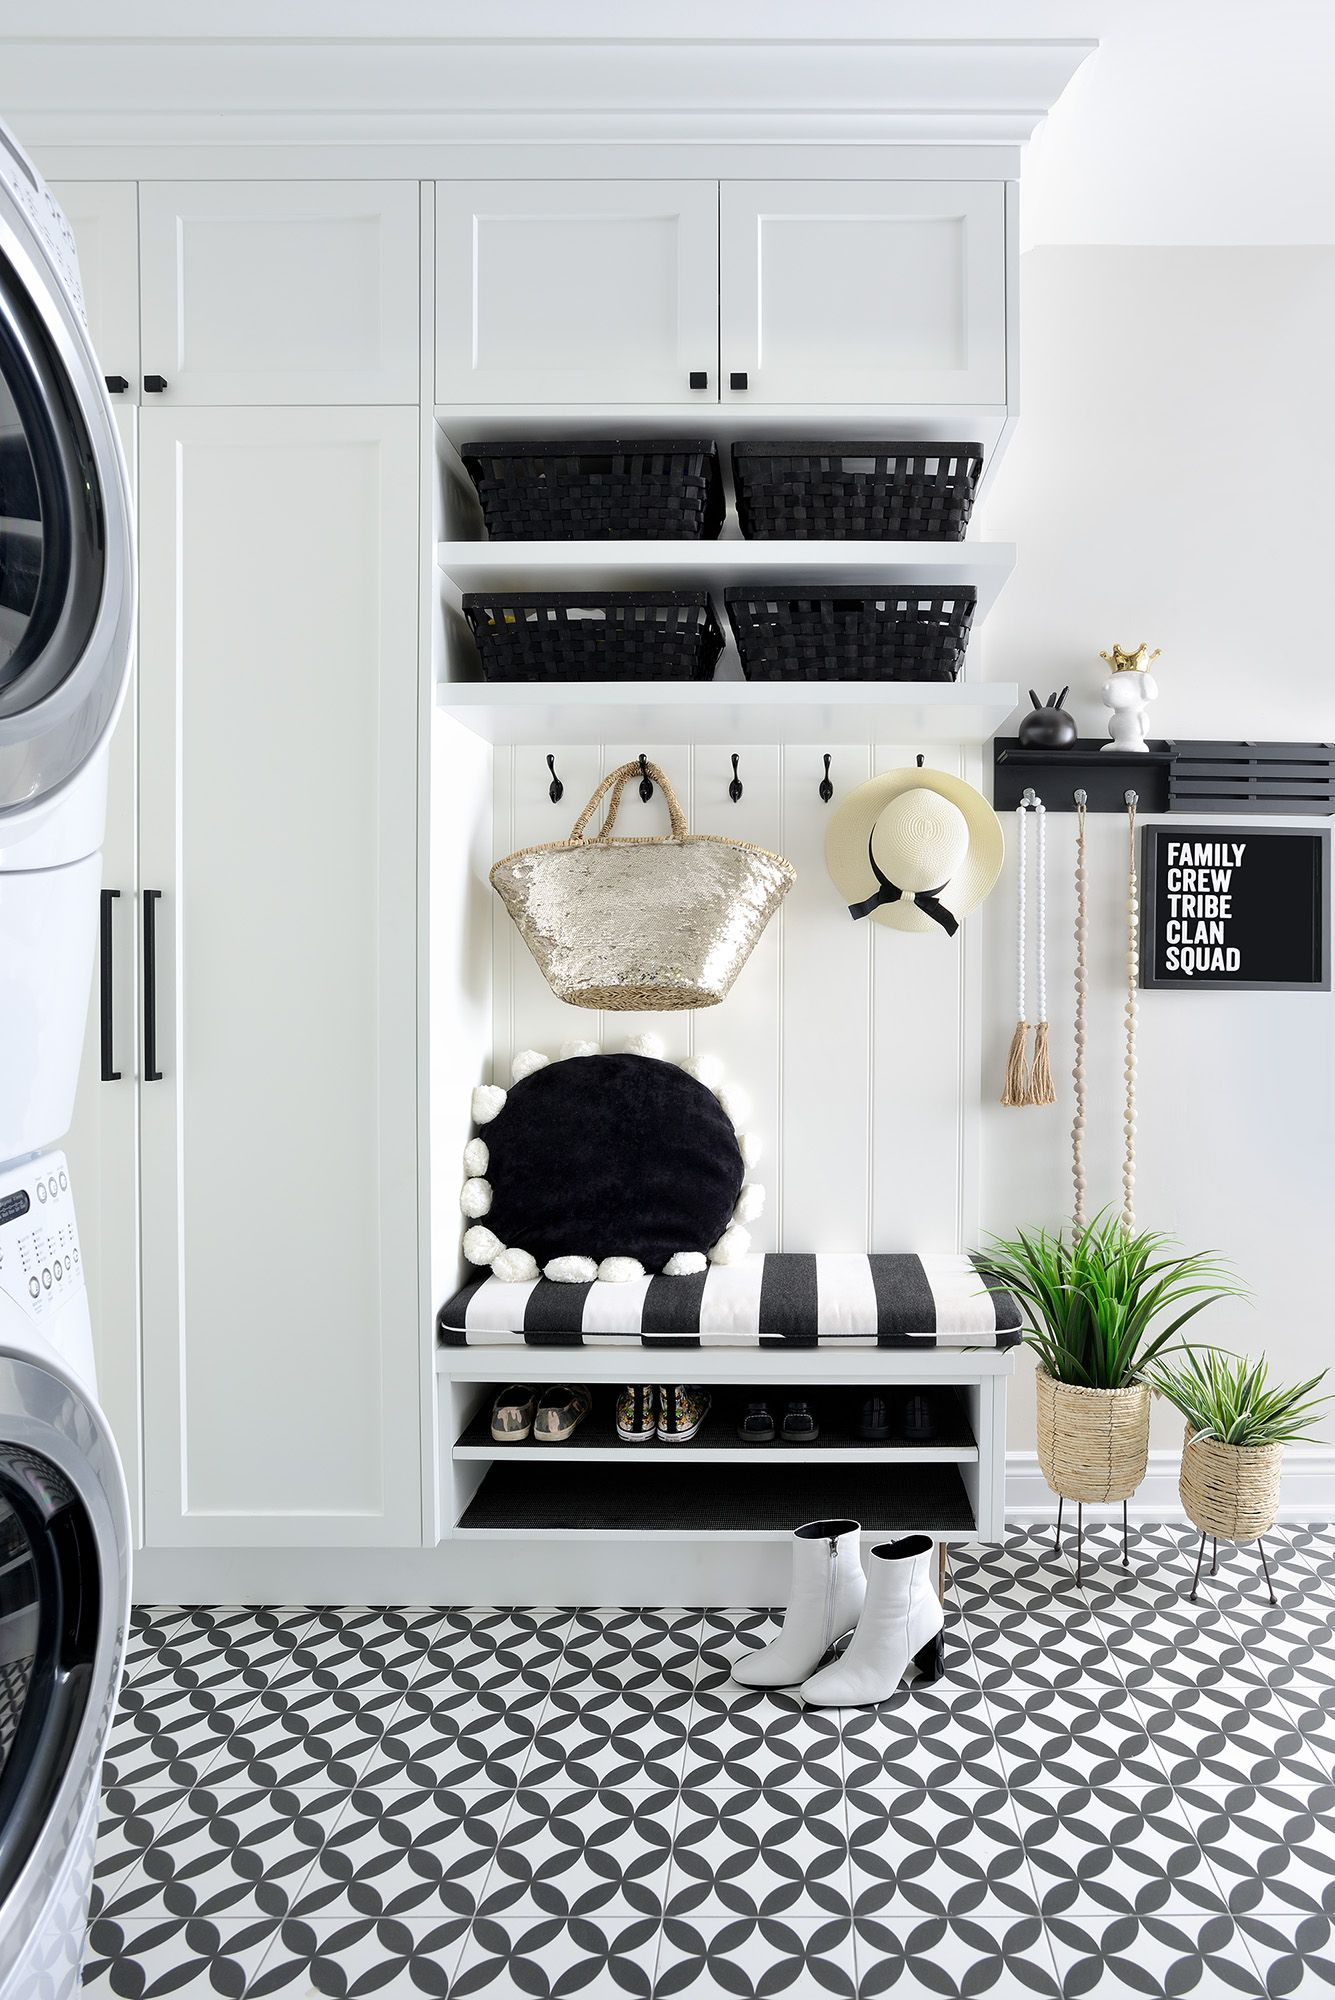 By Decor By Christine Small Mudroom In Graphic Black And White With Stunning Floor Tiles And Fun Accents Fr Decor Design Decor Decor Interior Design